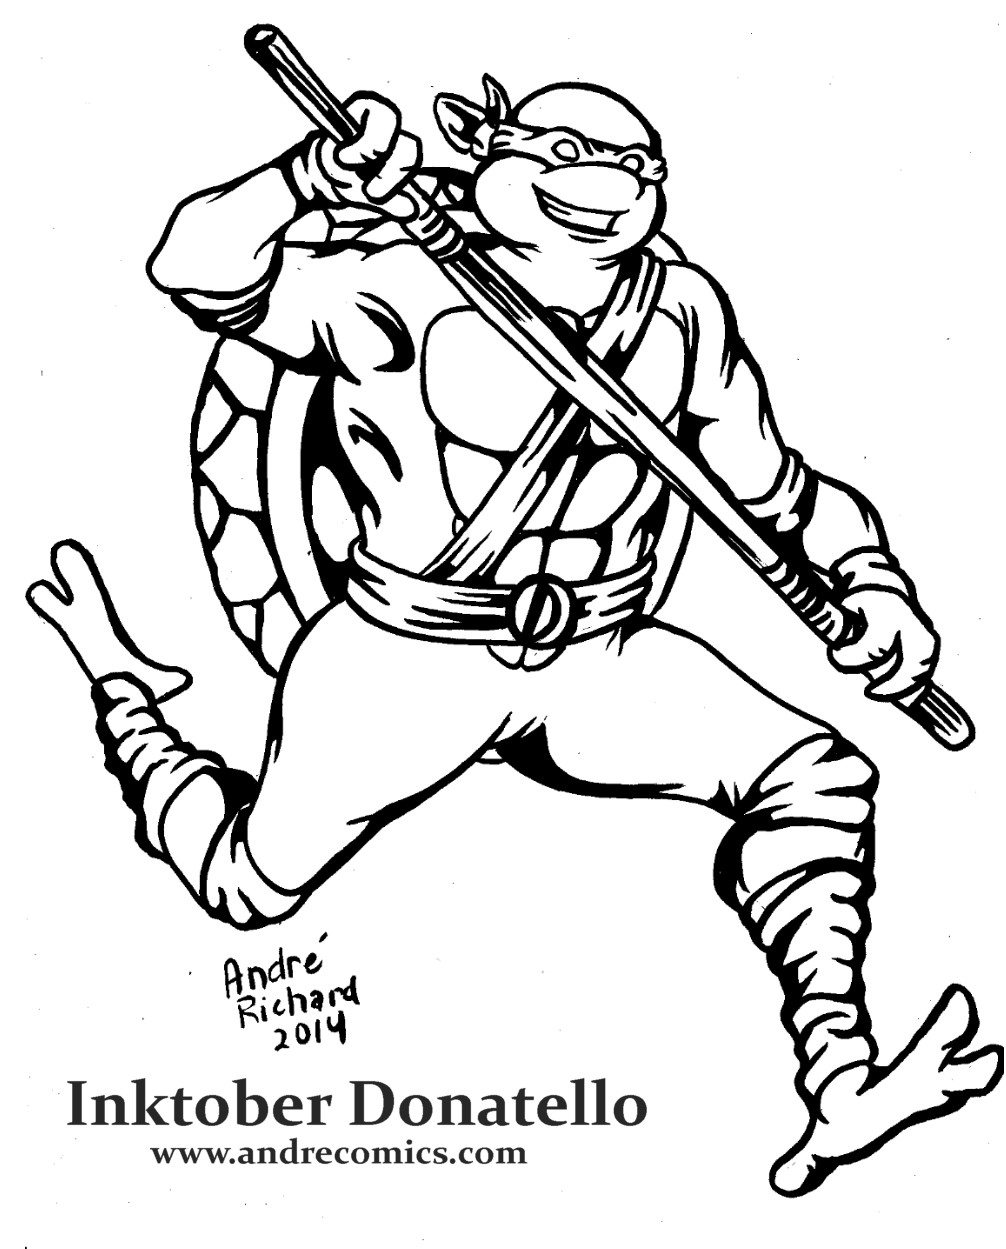 Oct23-Donatello-AndreRichard